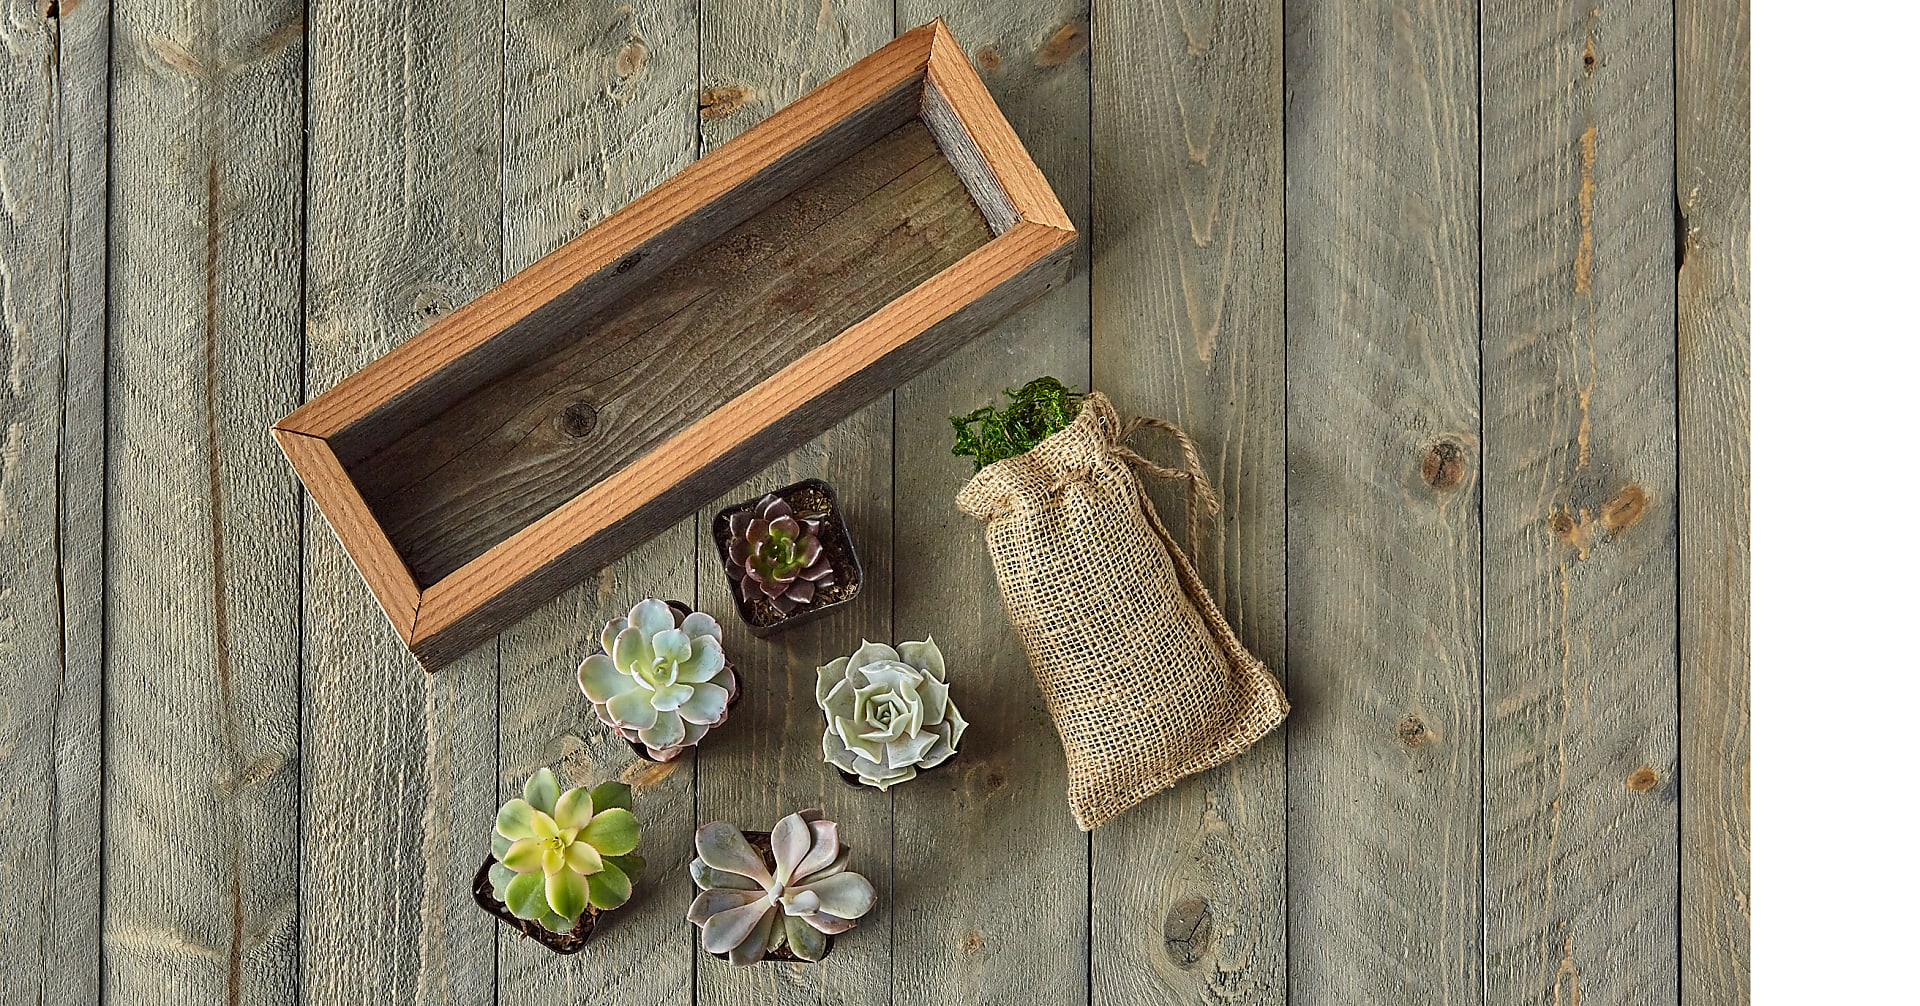 Succulent Garden DIY Kit - Image 5 Of 8